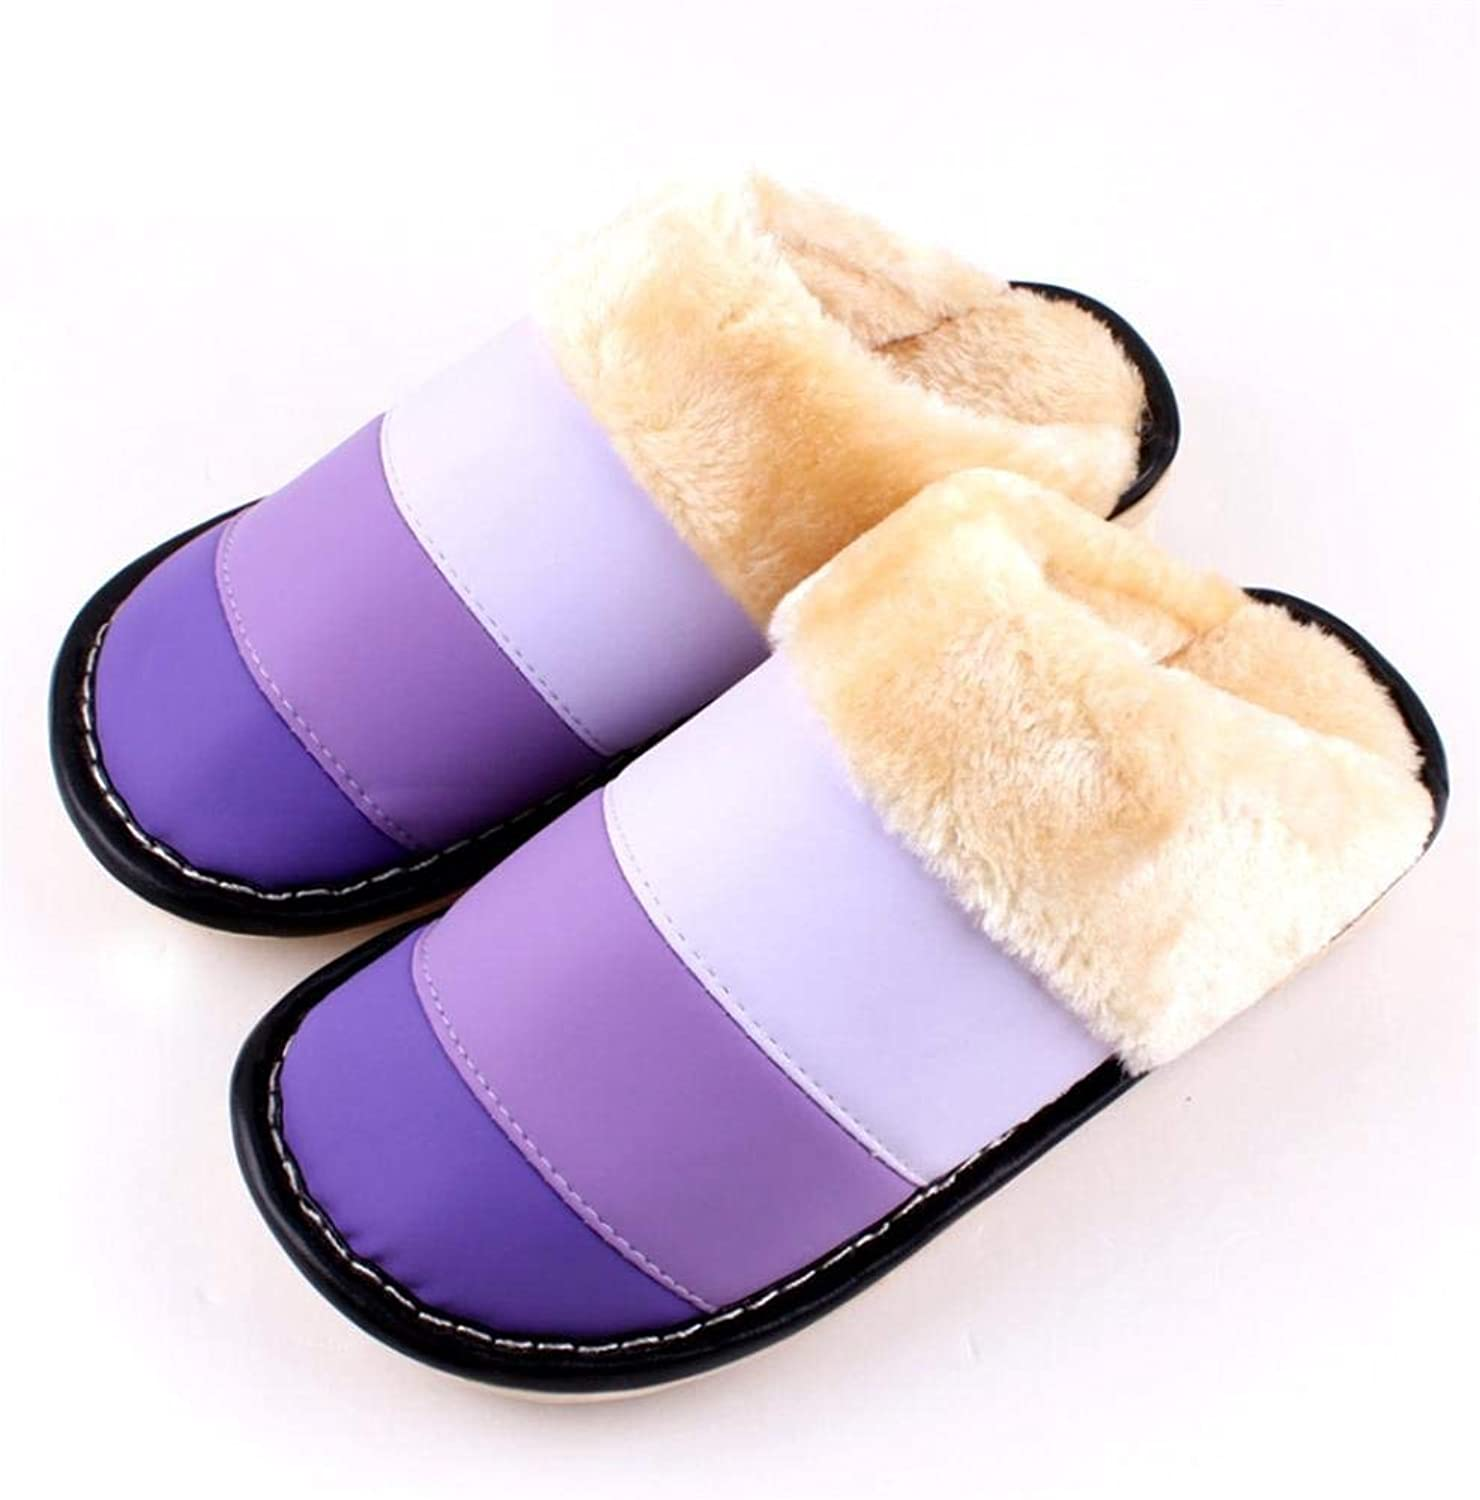 So8ooa Lady Slippers Ladies Casual Wool Slippers Indoors to Keep Warm in Autumn and Winter Slippers for Women Pink Purple Red